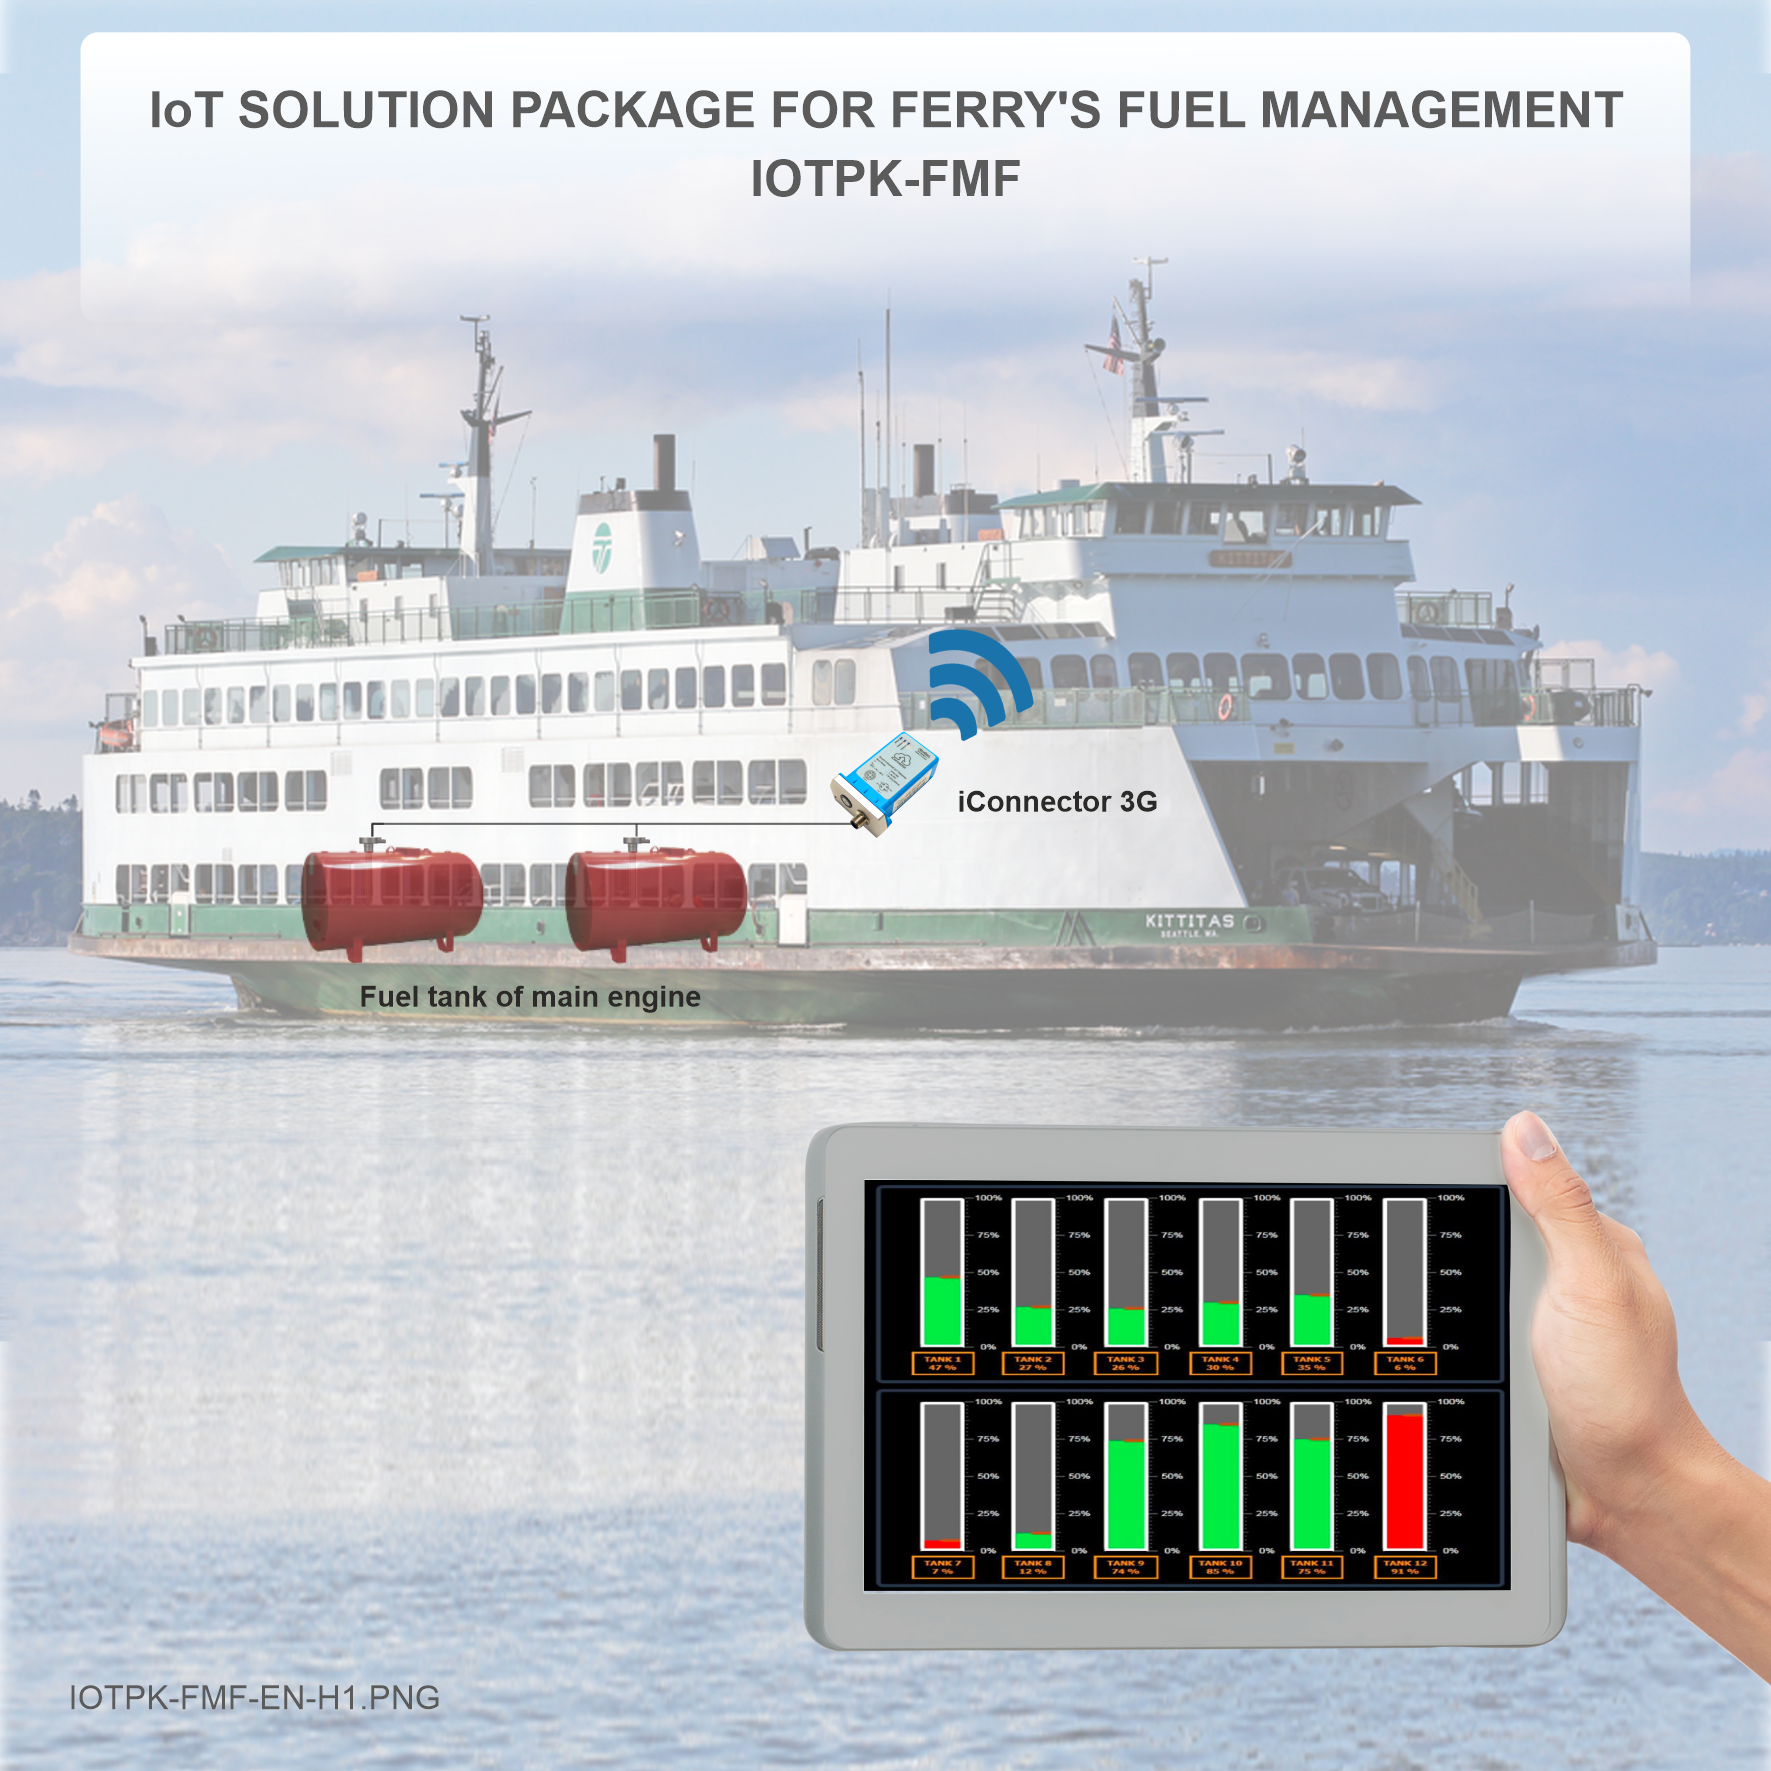 IoT SOLUTION PACKAGE FOR FERRY FUEL MANAGEMENT